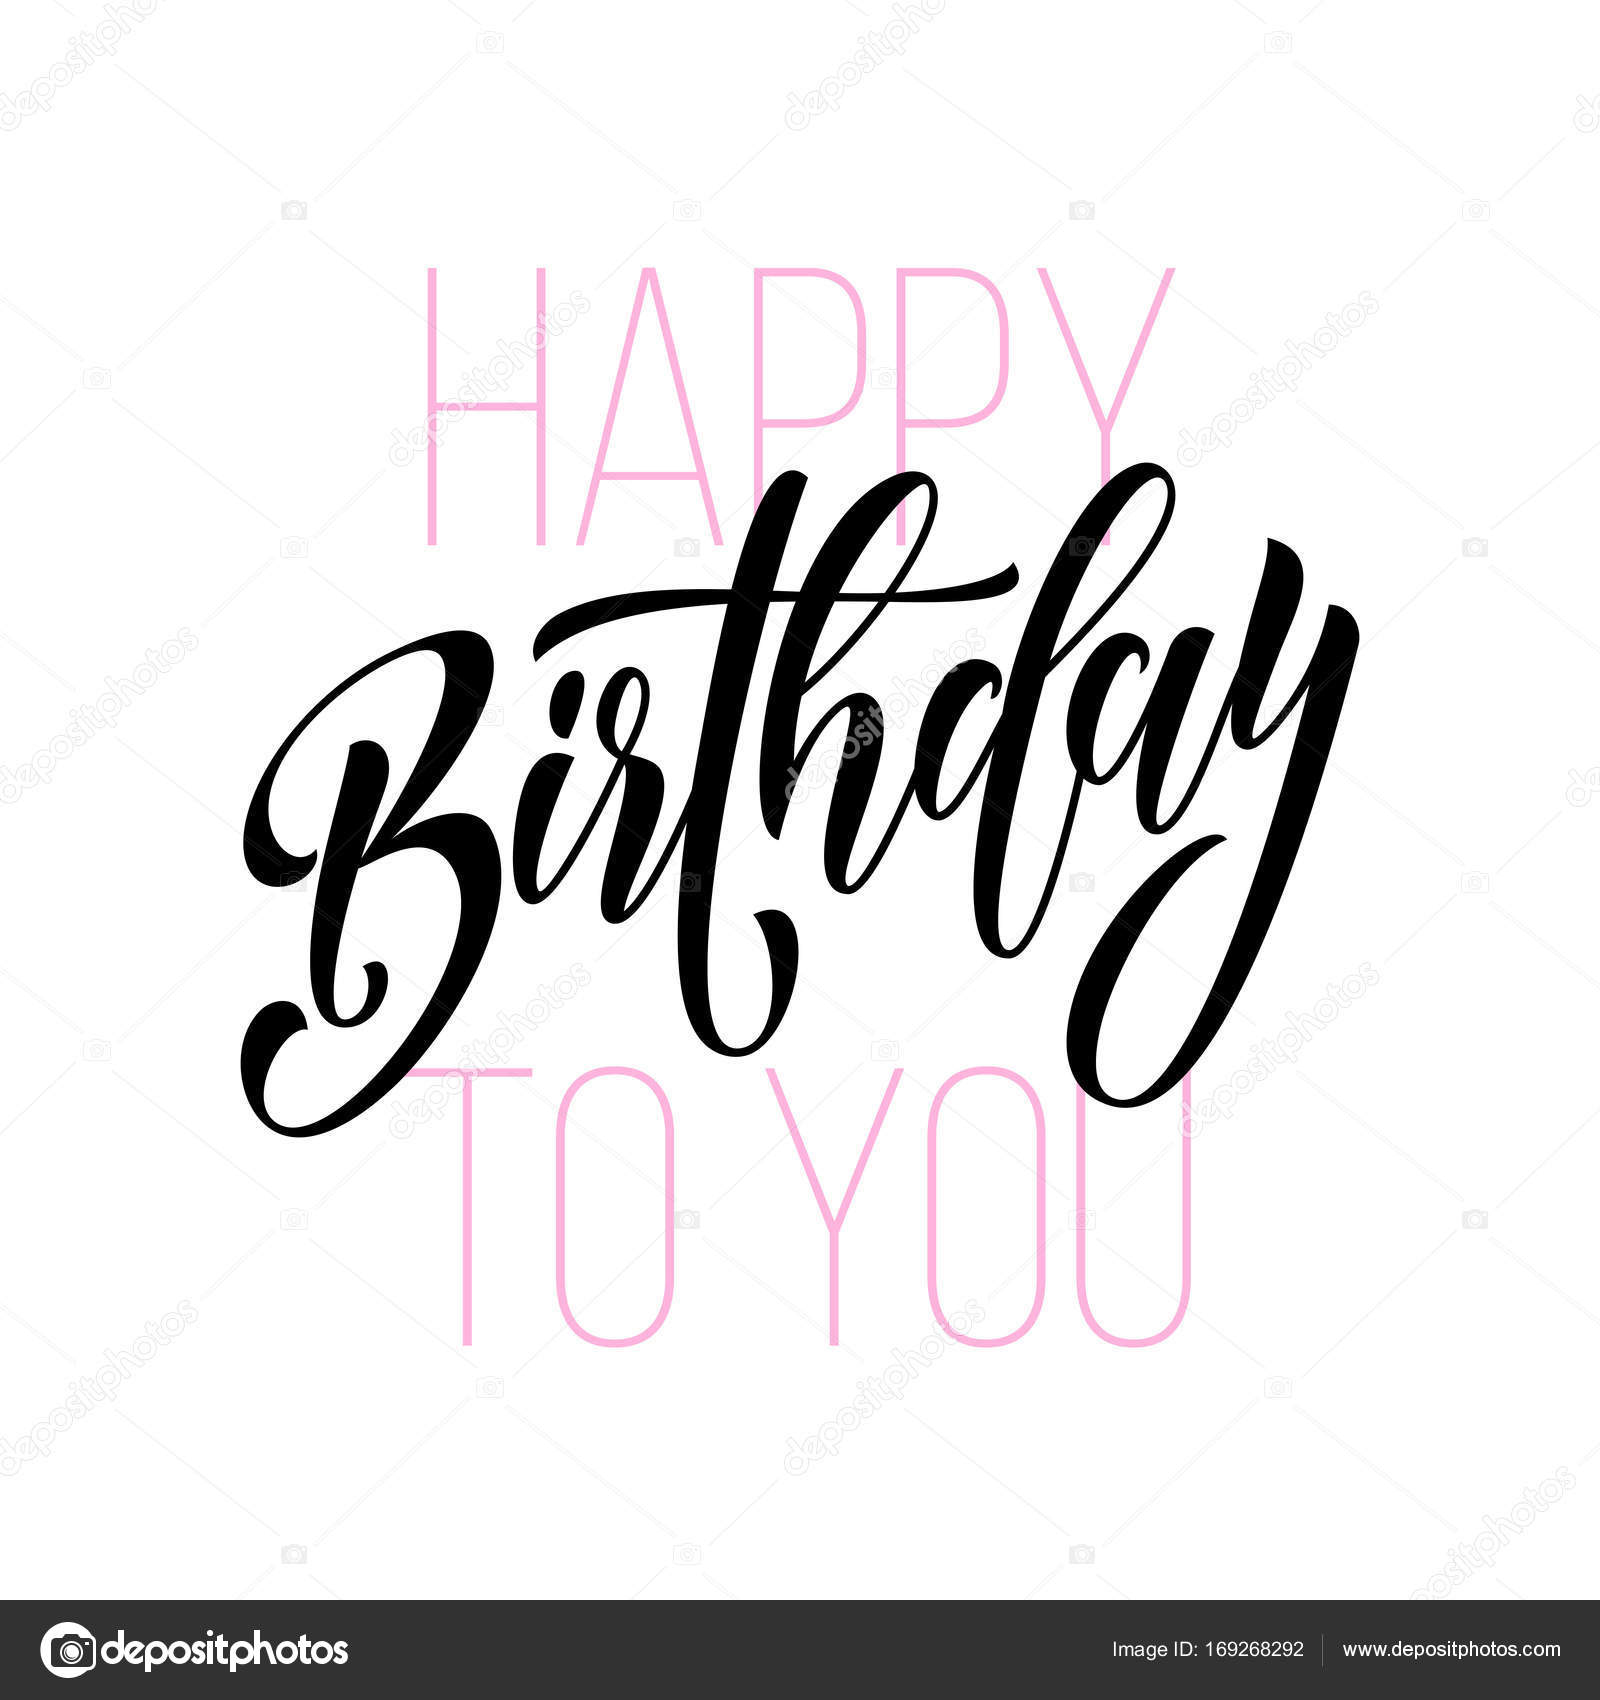 drawing of birthday greeting cards ; depositphotos_169268292-stock-illustration-happy-birthday-greeting-card-calligraphy